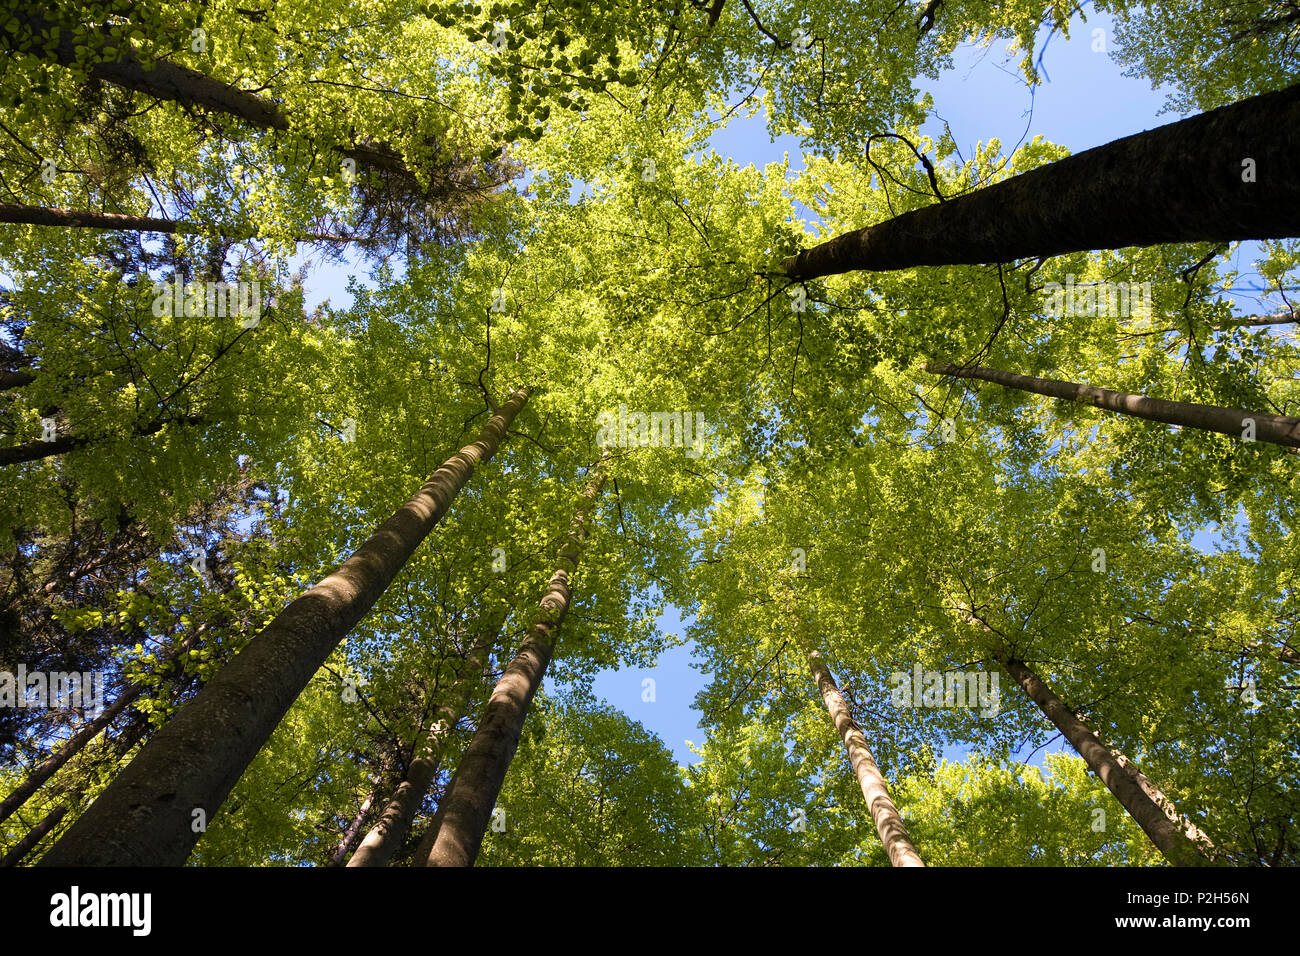 beech-forest in spring, Fagus sylvatica - Stock Image